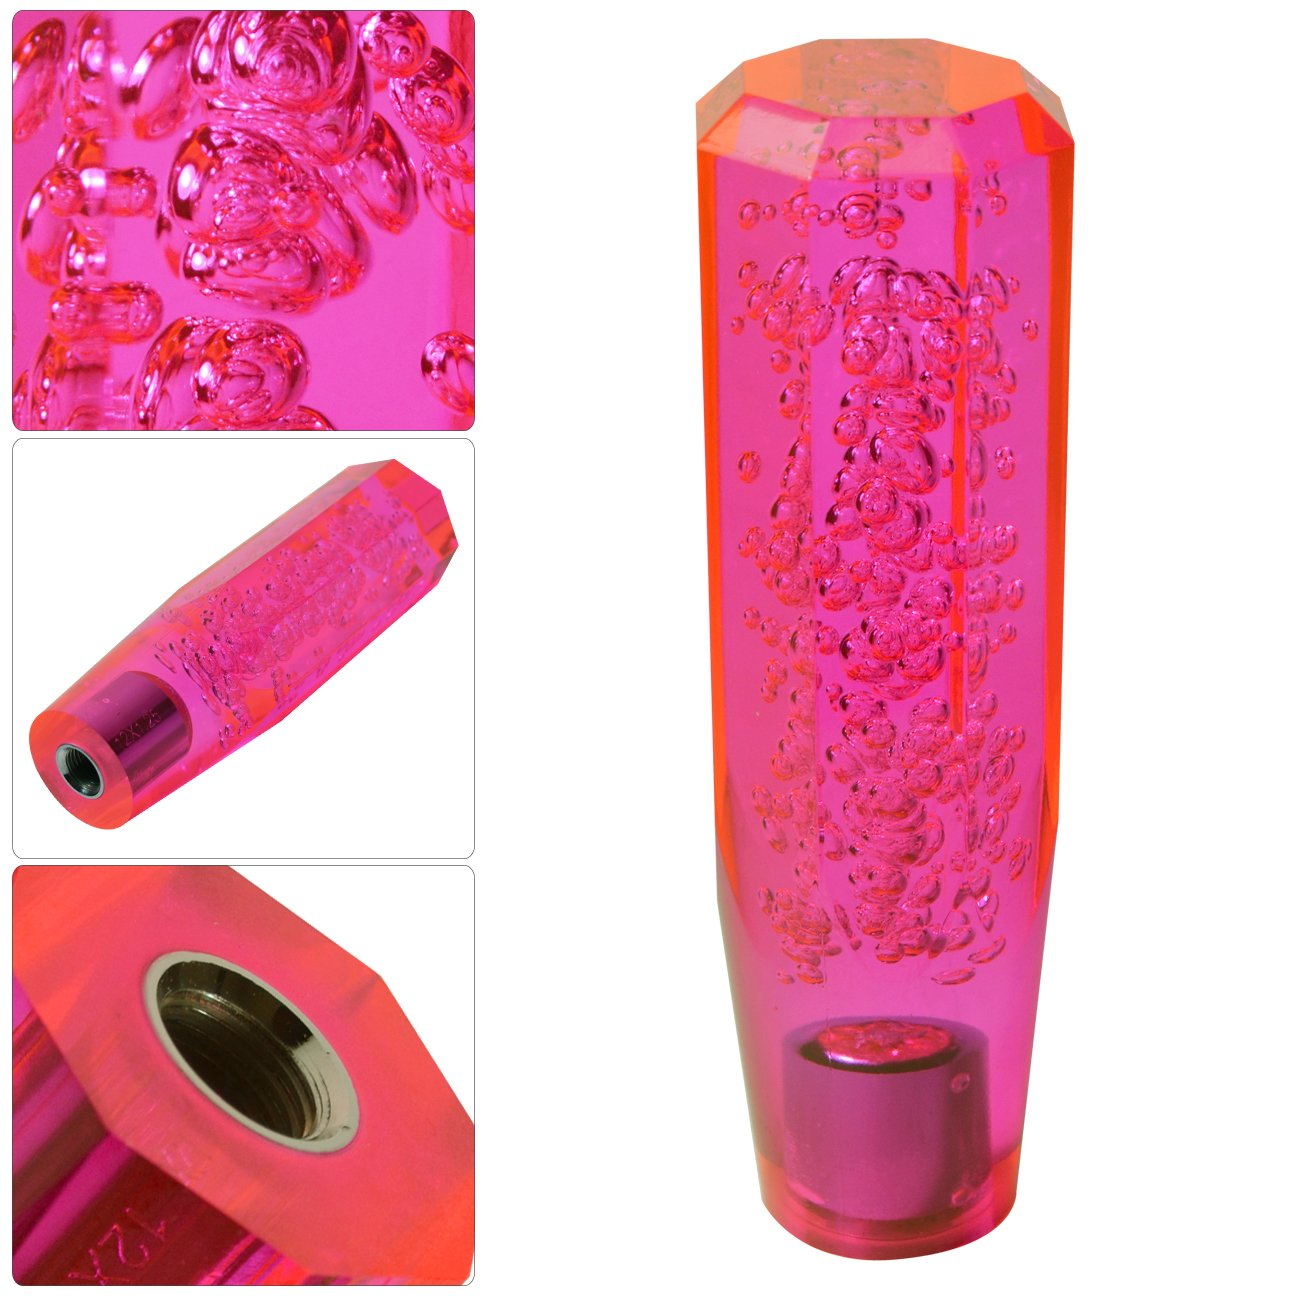 Universal Jdm Vip 150Mm Crystal Octagon Style Bubble Filled Shift Knob Transparent Neon Pink M/T